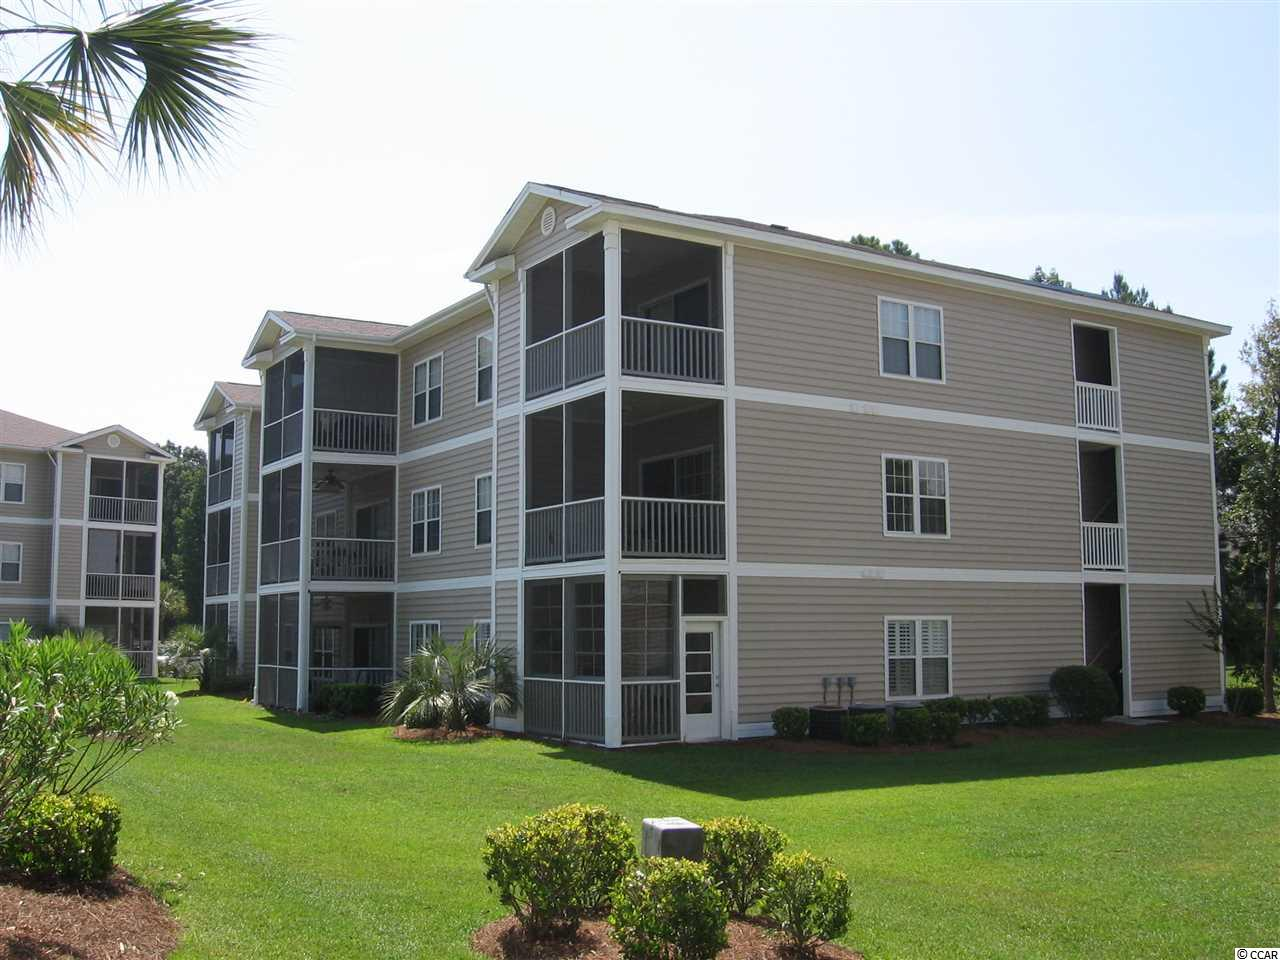 This 3-bedroom/2-bath top floor condo in the popular Sweetwater community adjacent to Indian Wells Golf Course offers a convenient location and comfortable living in a bright and open floorplan. Overlooking the swimming pool with a newly rebuilt balcony/screened-in porch, this home provides comfort and relaxation both inside and out. Easy access to 17 and close to shopping, restaurants, and the waterfront of Murrells Inlet, this home gives you the convenience and quality for an exceptional value. Plus, its located in the highly awarded St. James School District for families looking for a strong educational opportunity. Square footage is approximate and not guaranteed. Buyer responsible for verification.